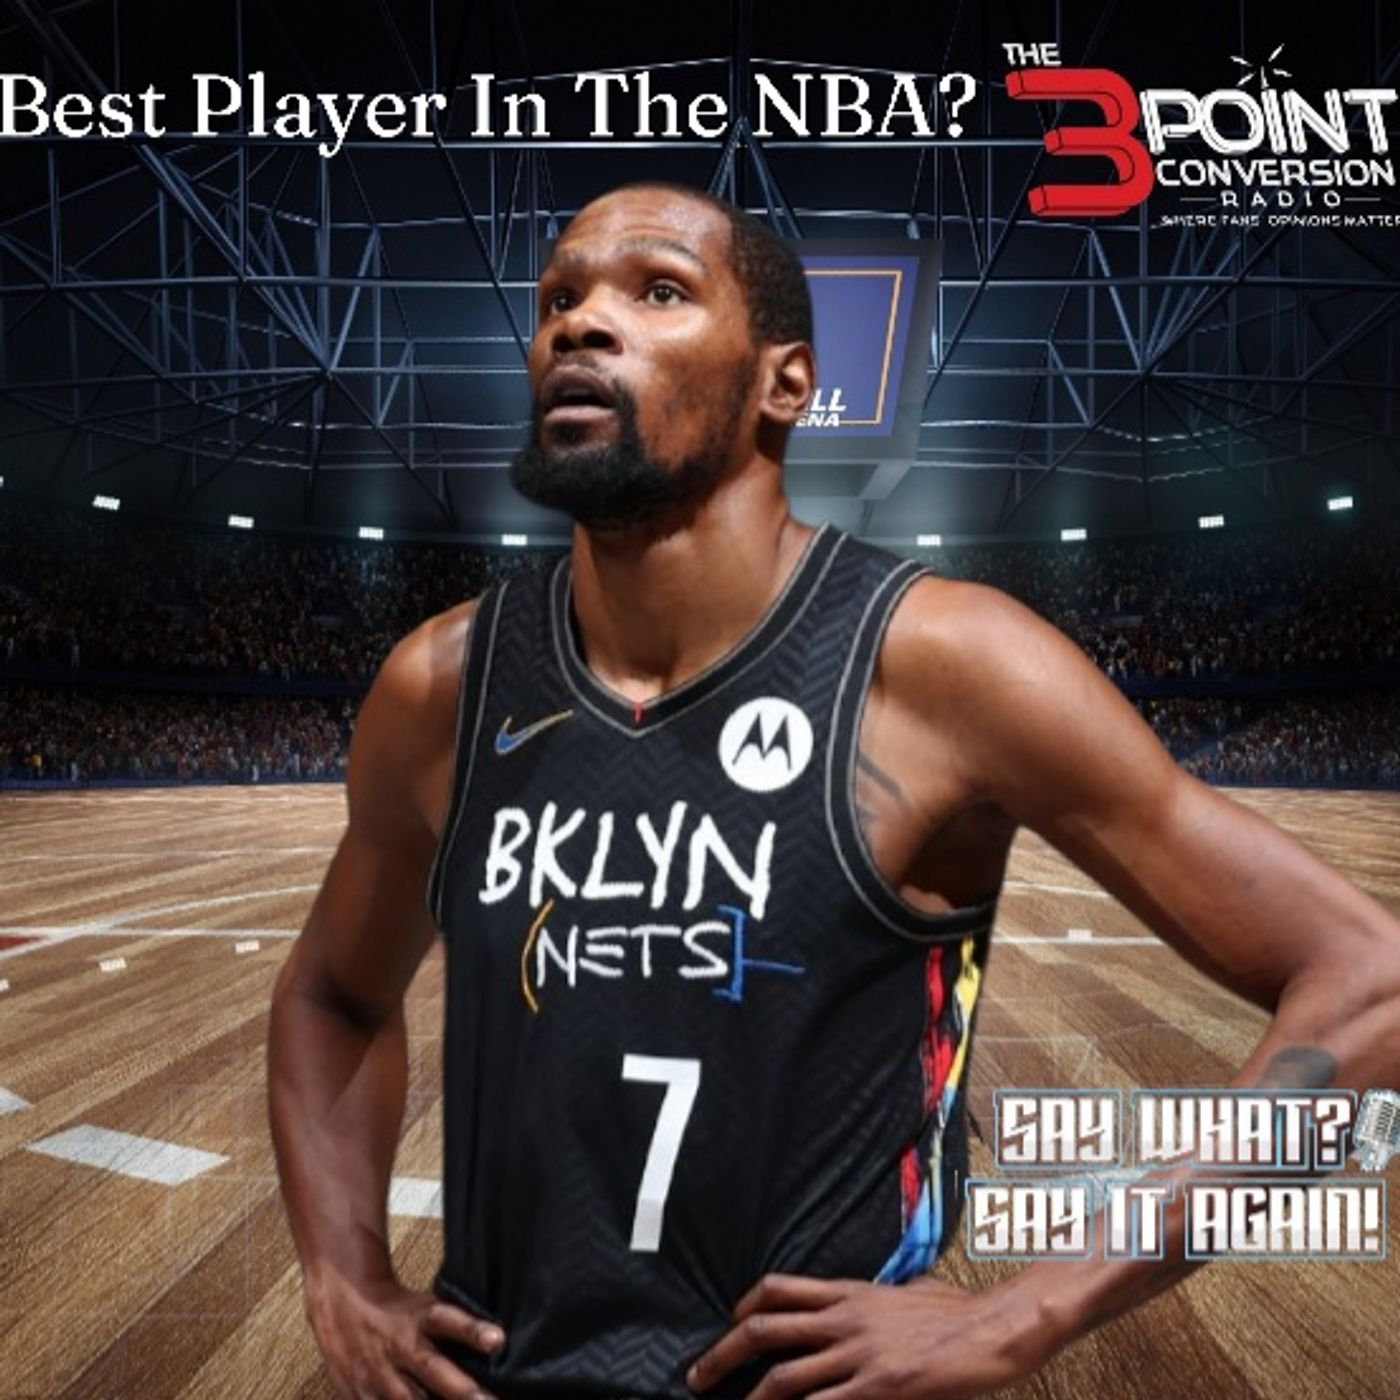 Say What -Say It Again - Who Is The Best Player In The NBA Kevin Durant Or LeBron James